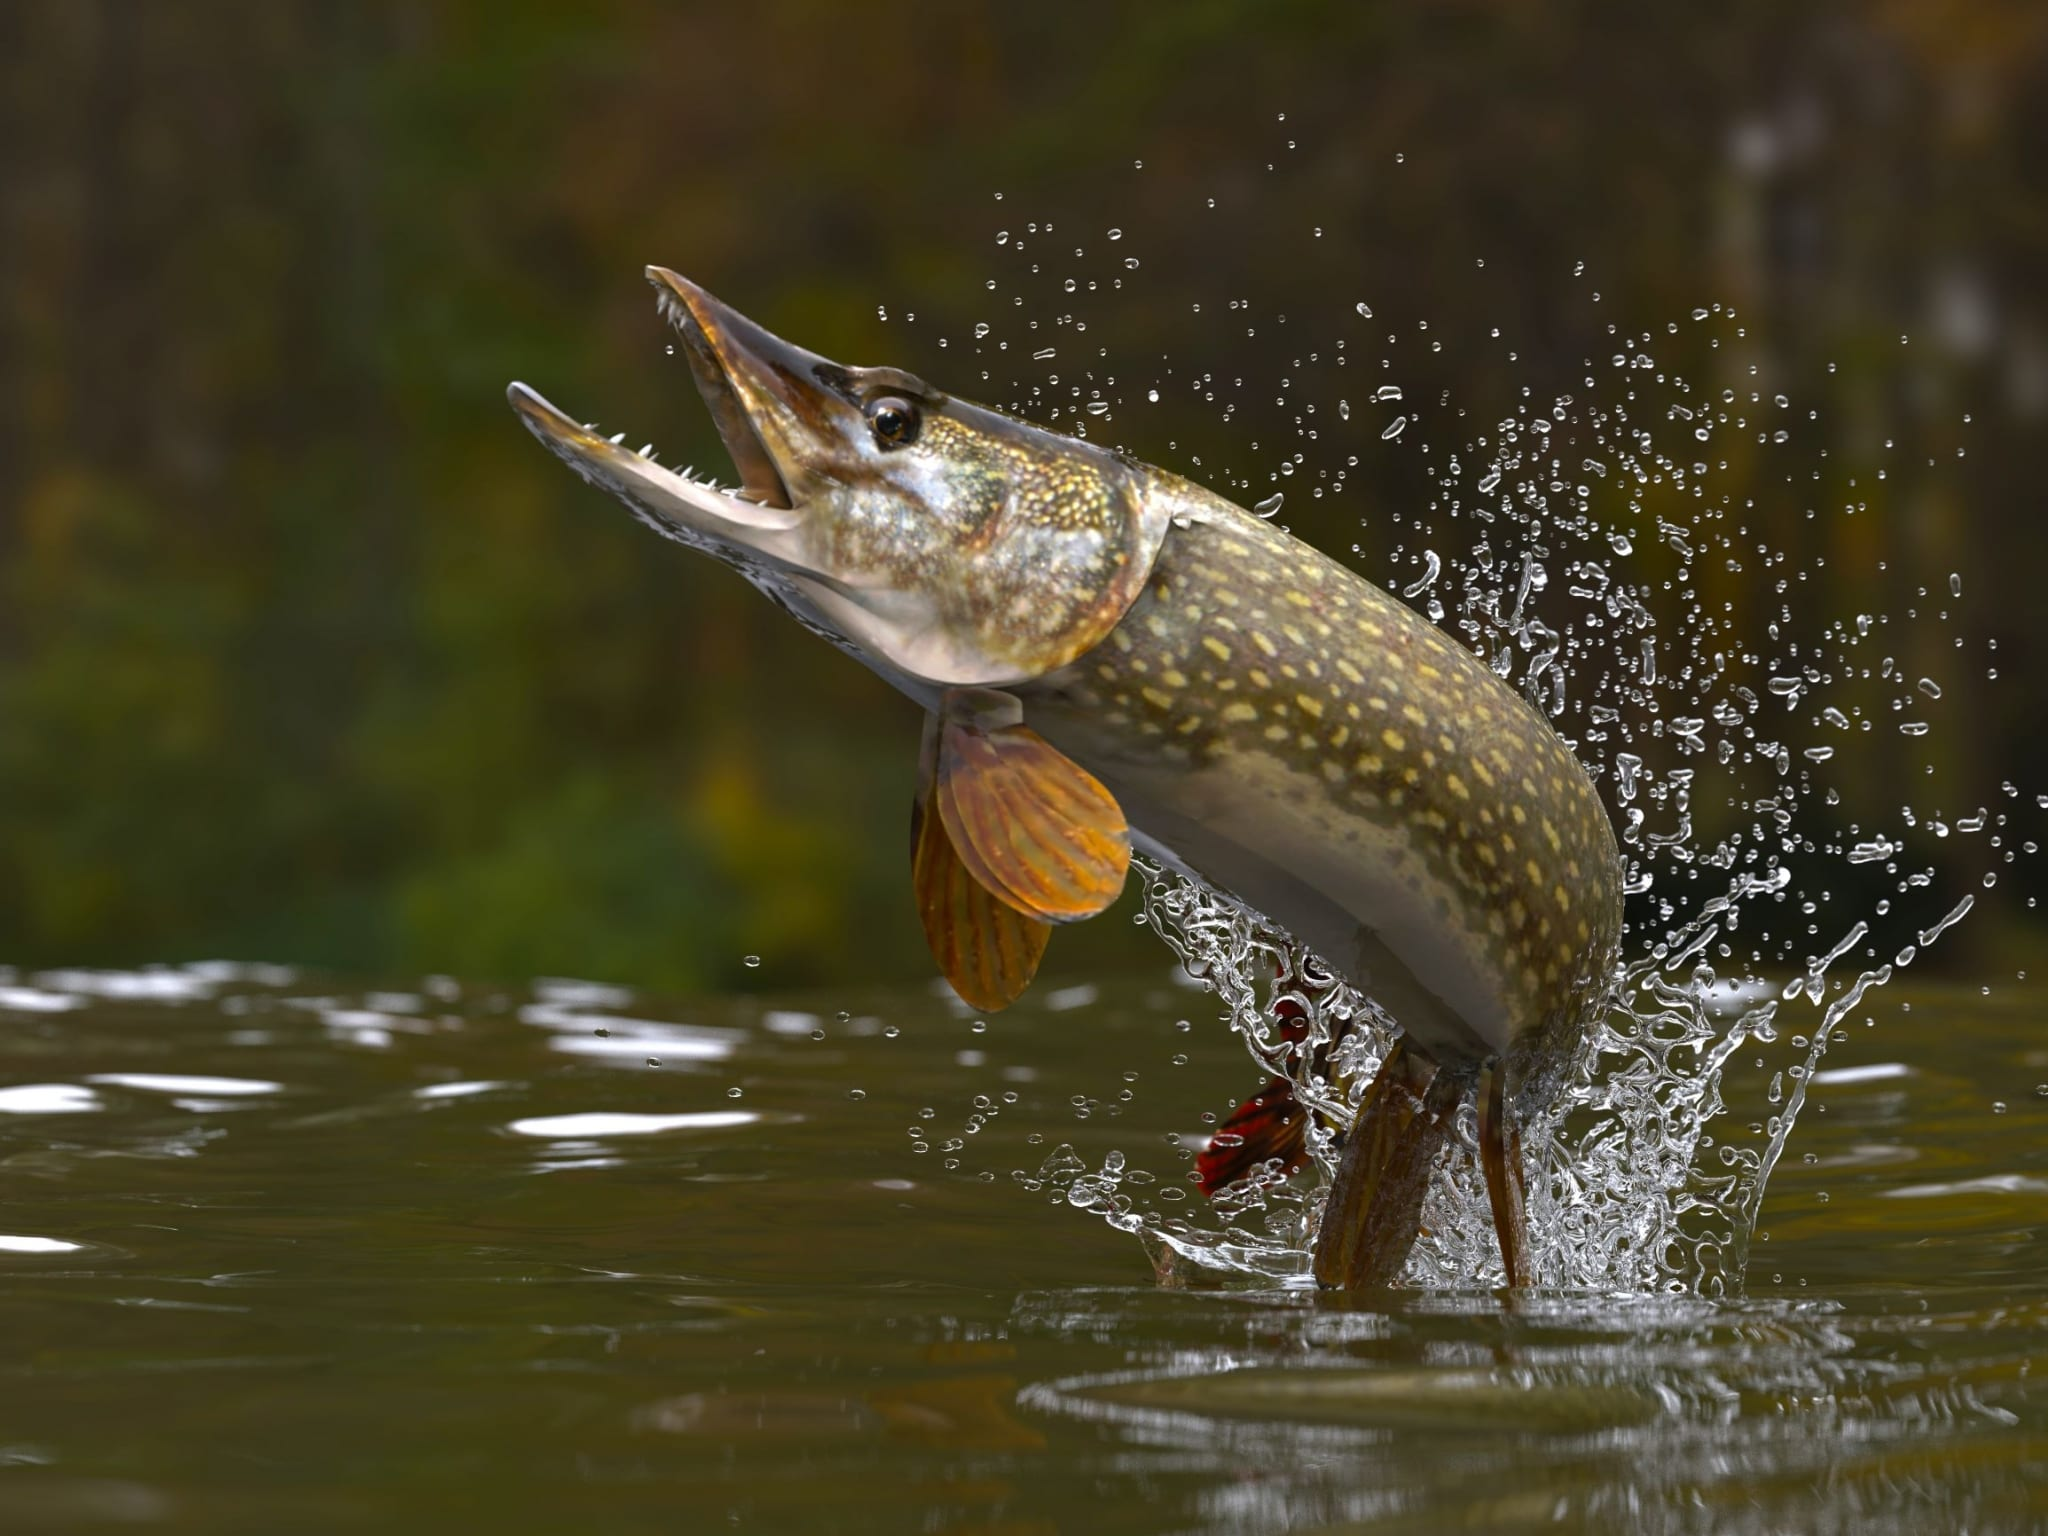 A northern pike leaps out of the water.